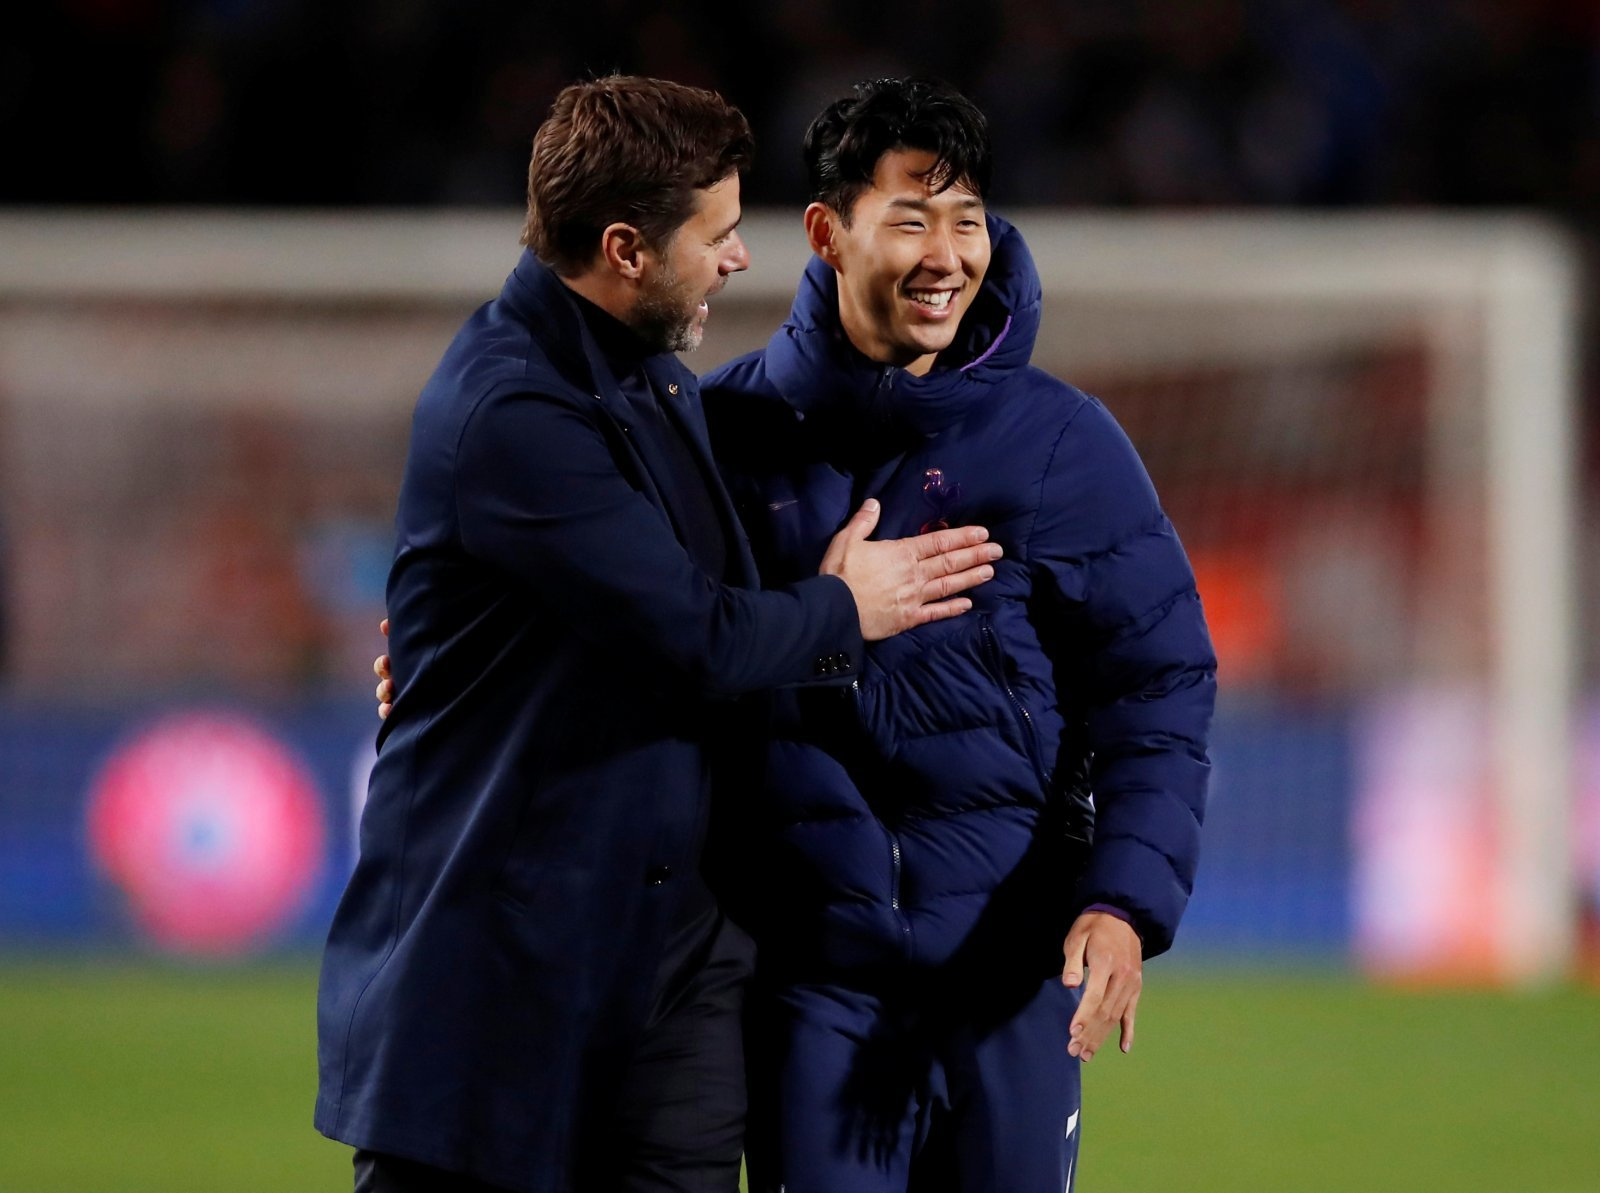 Tottenham Hotspur: Lots of fans were buzzing to see club end six-month winless run on the road